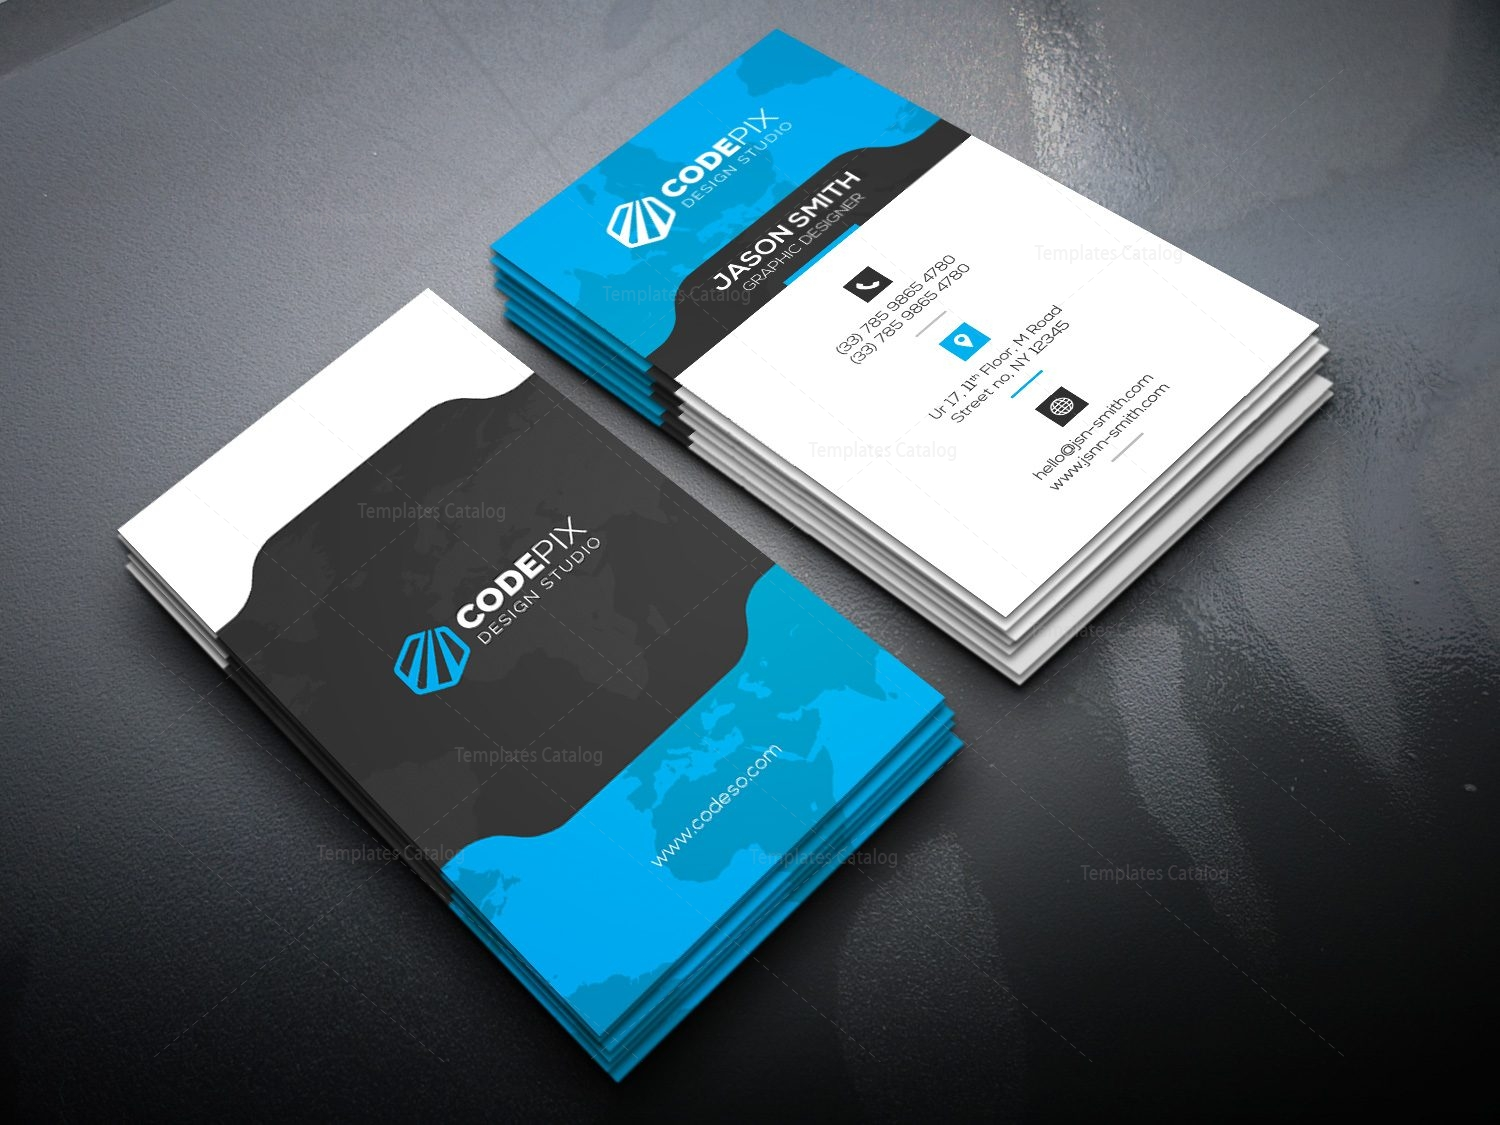 Vertical business card with stylish design 000521 template catalog vertical business card with stylish design 3 pronofoot35fo Choice Image